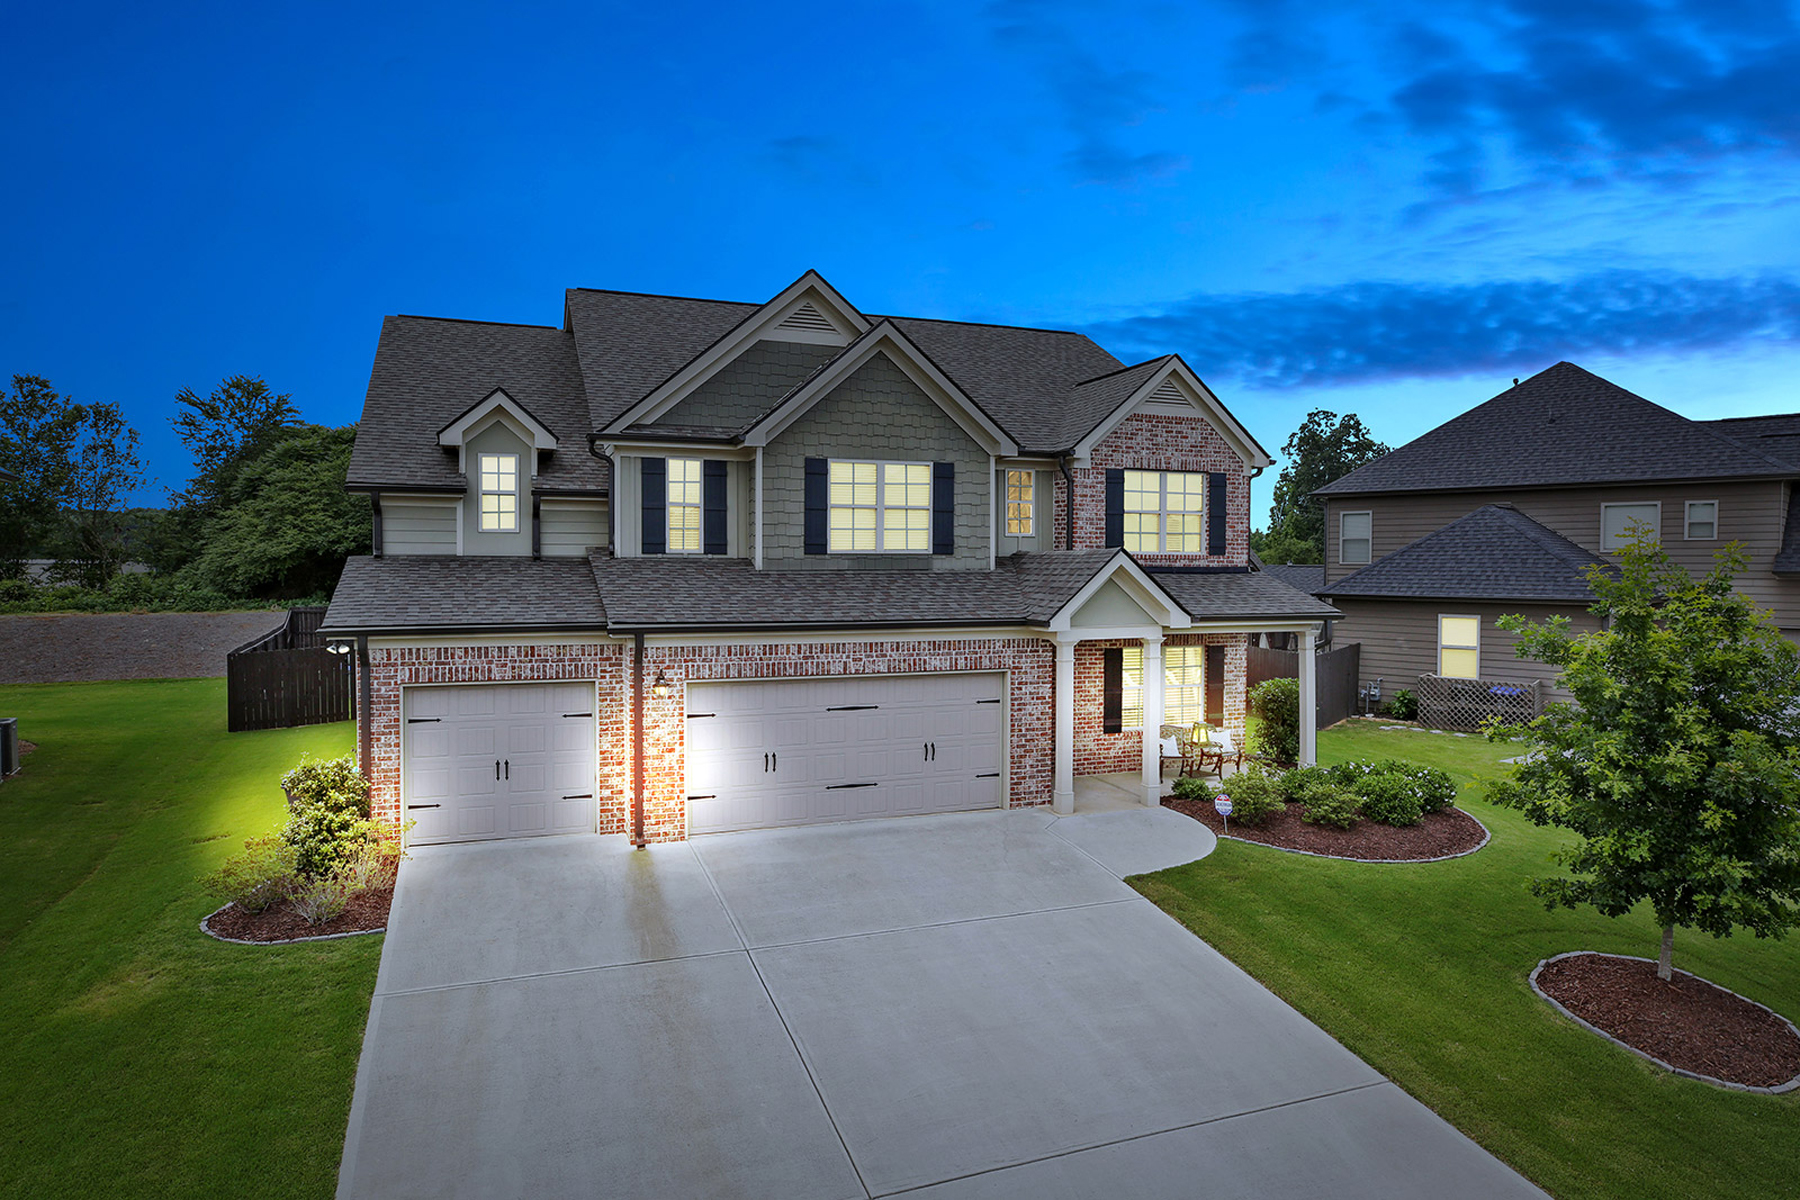 Single Family Home for Sale at Better Than New In Hunters Walk 4220 Standing Rock Way Cumming, Georgia 30028 United States